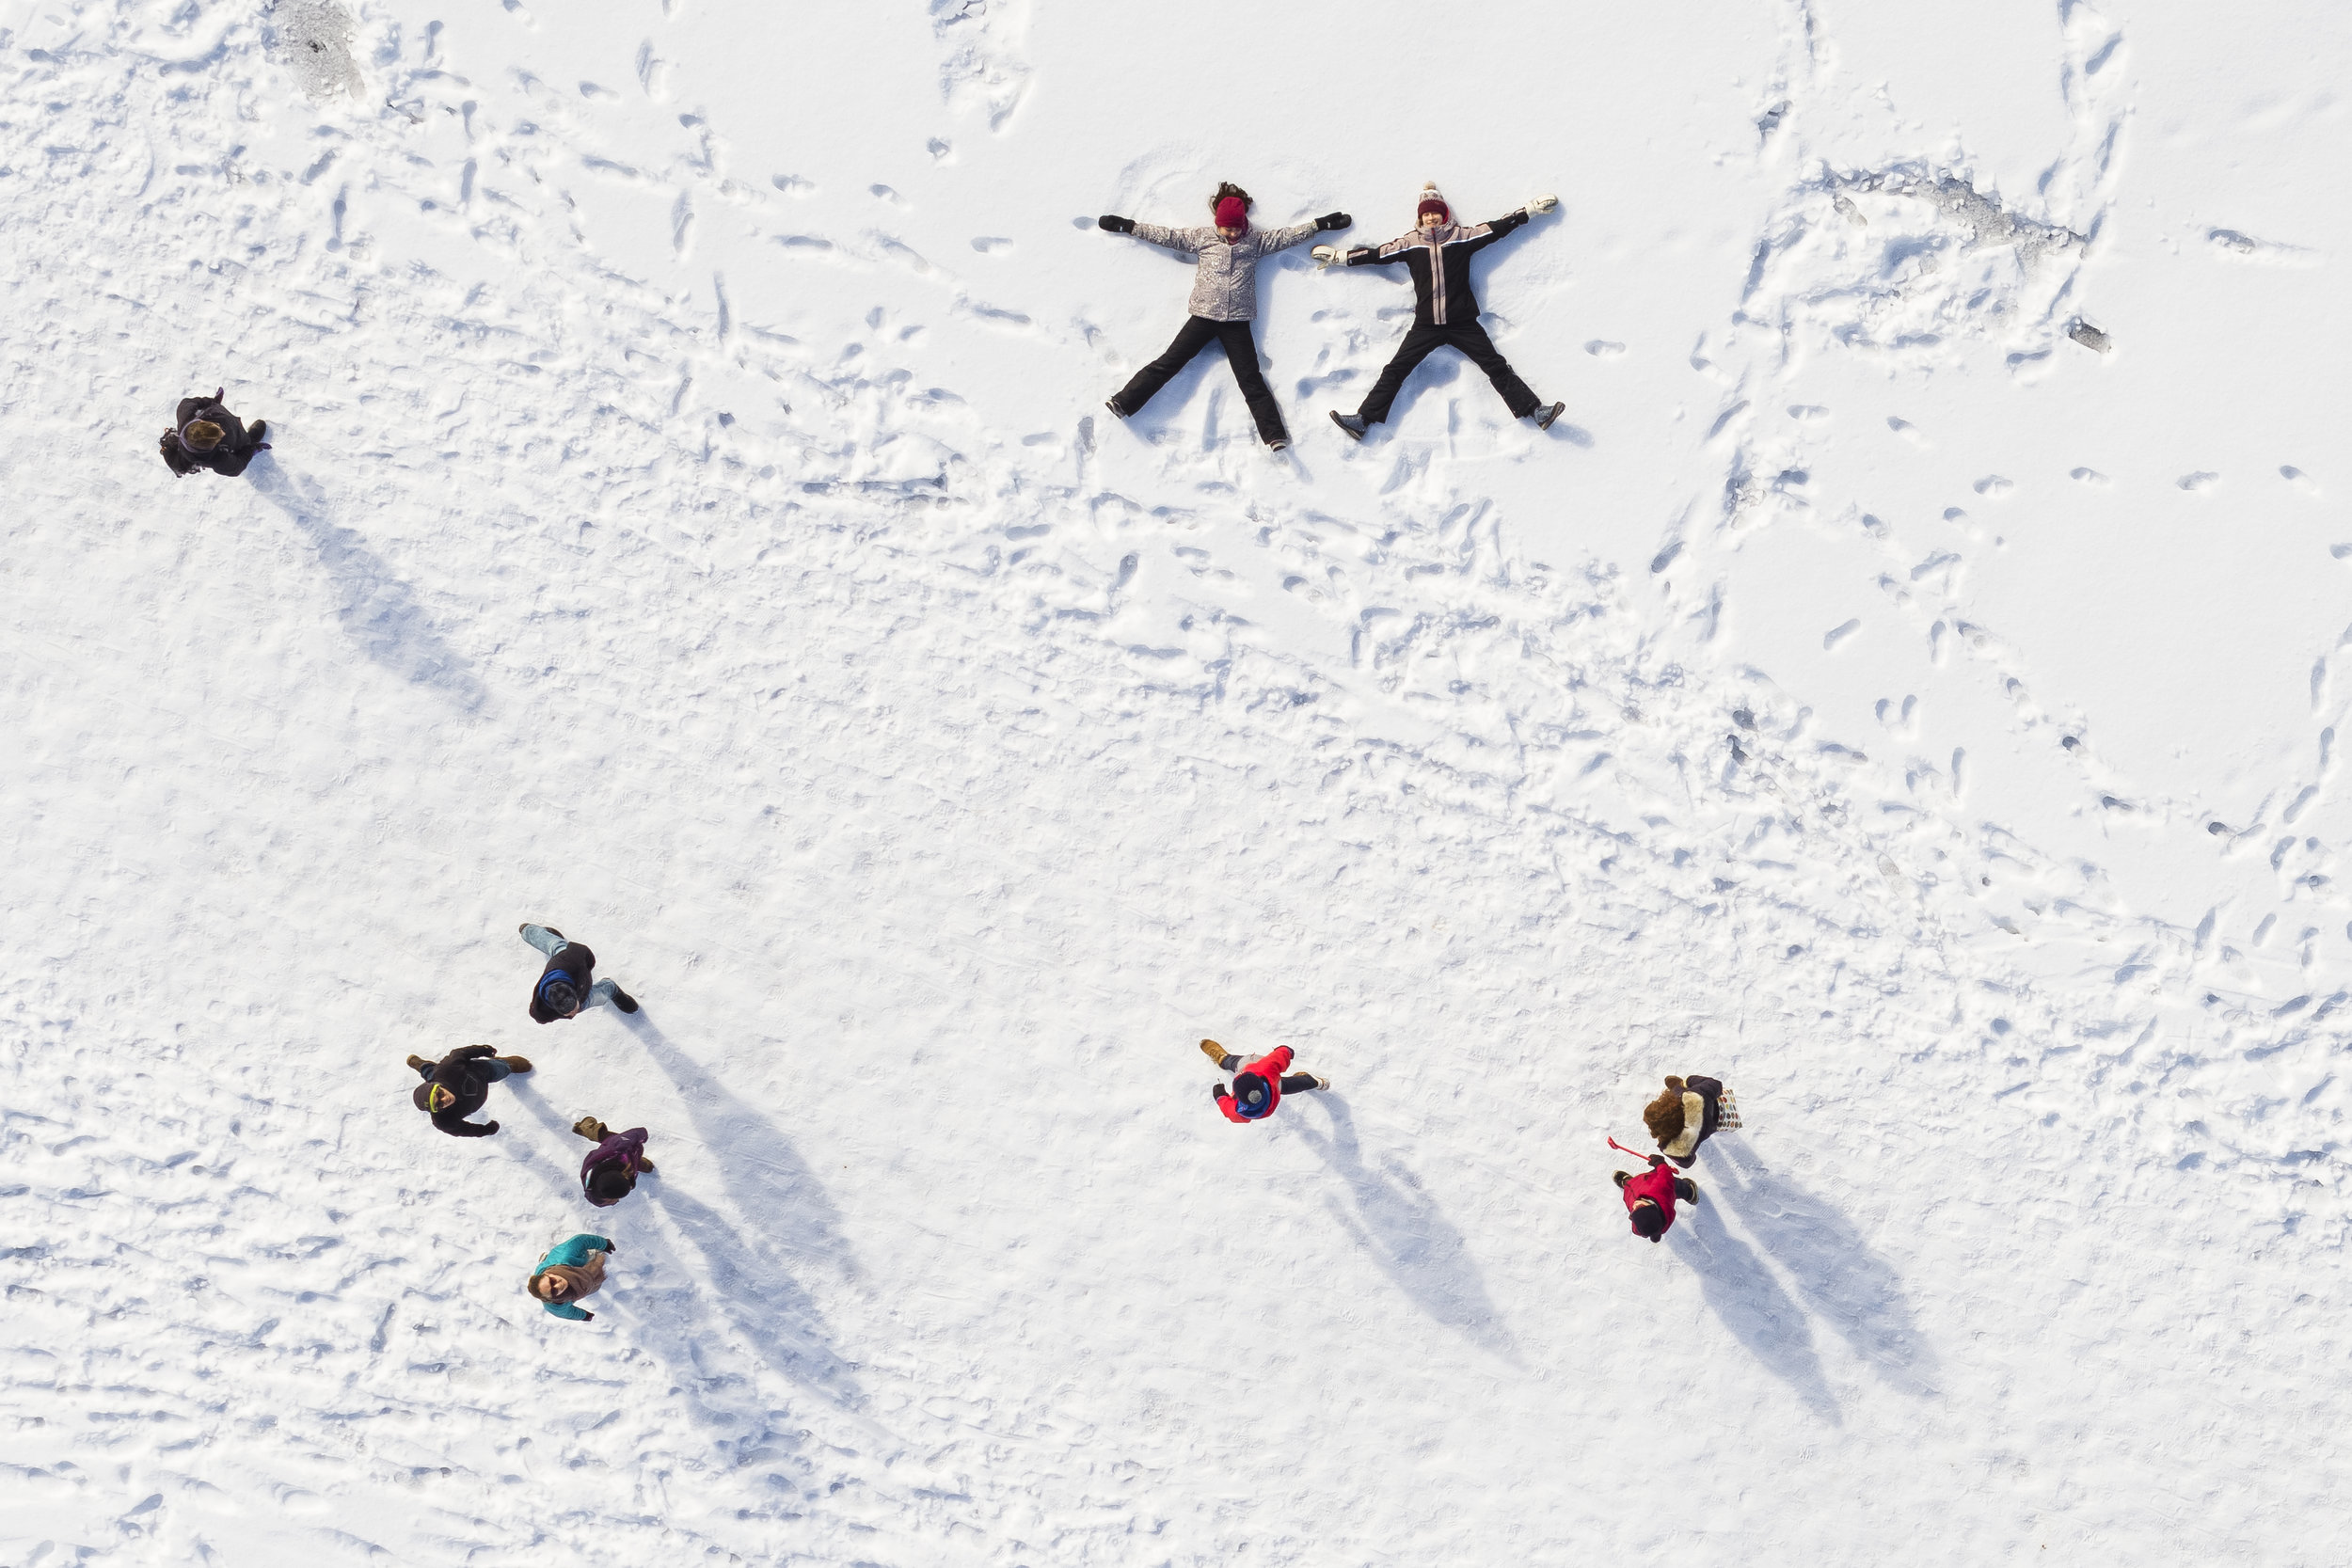 """Children play in the snow as people walk by on the frozen lake """"Lac de Joux"""" after a series of cold days in Le Pont, Western Switzerland, Sunday, March 4, 2018. (KEYSTONE/Valentin Flauraud)"""